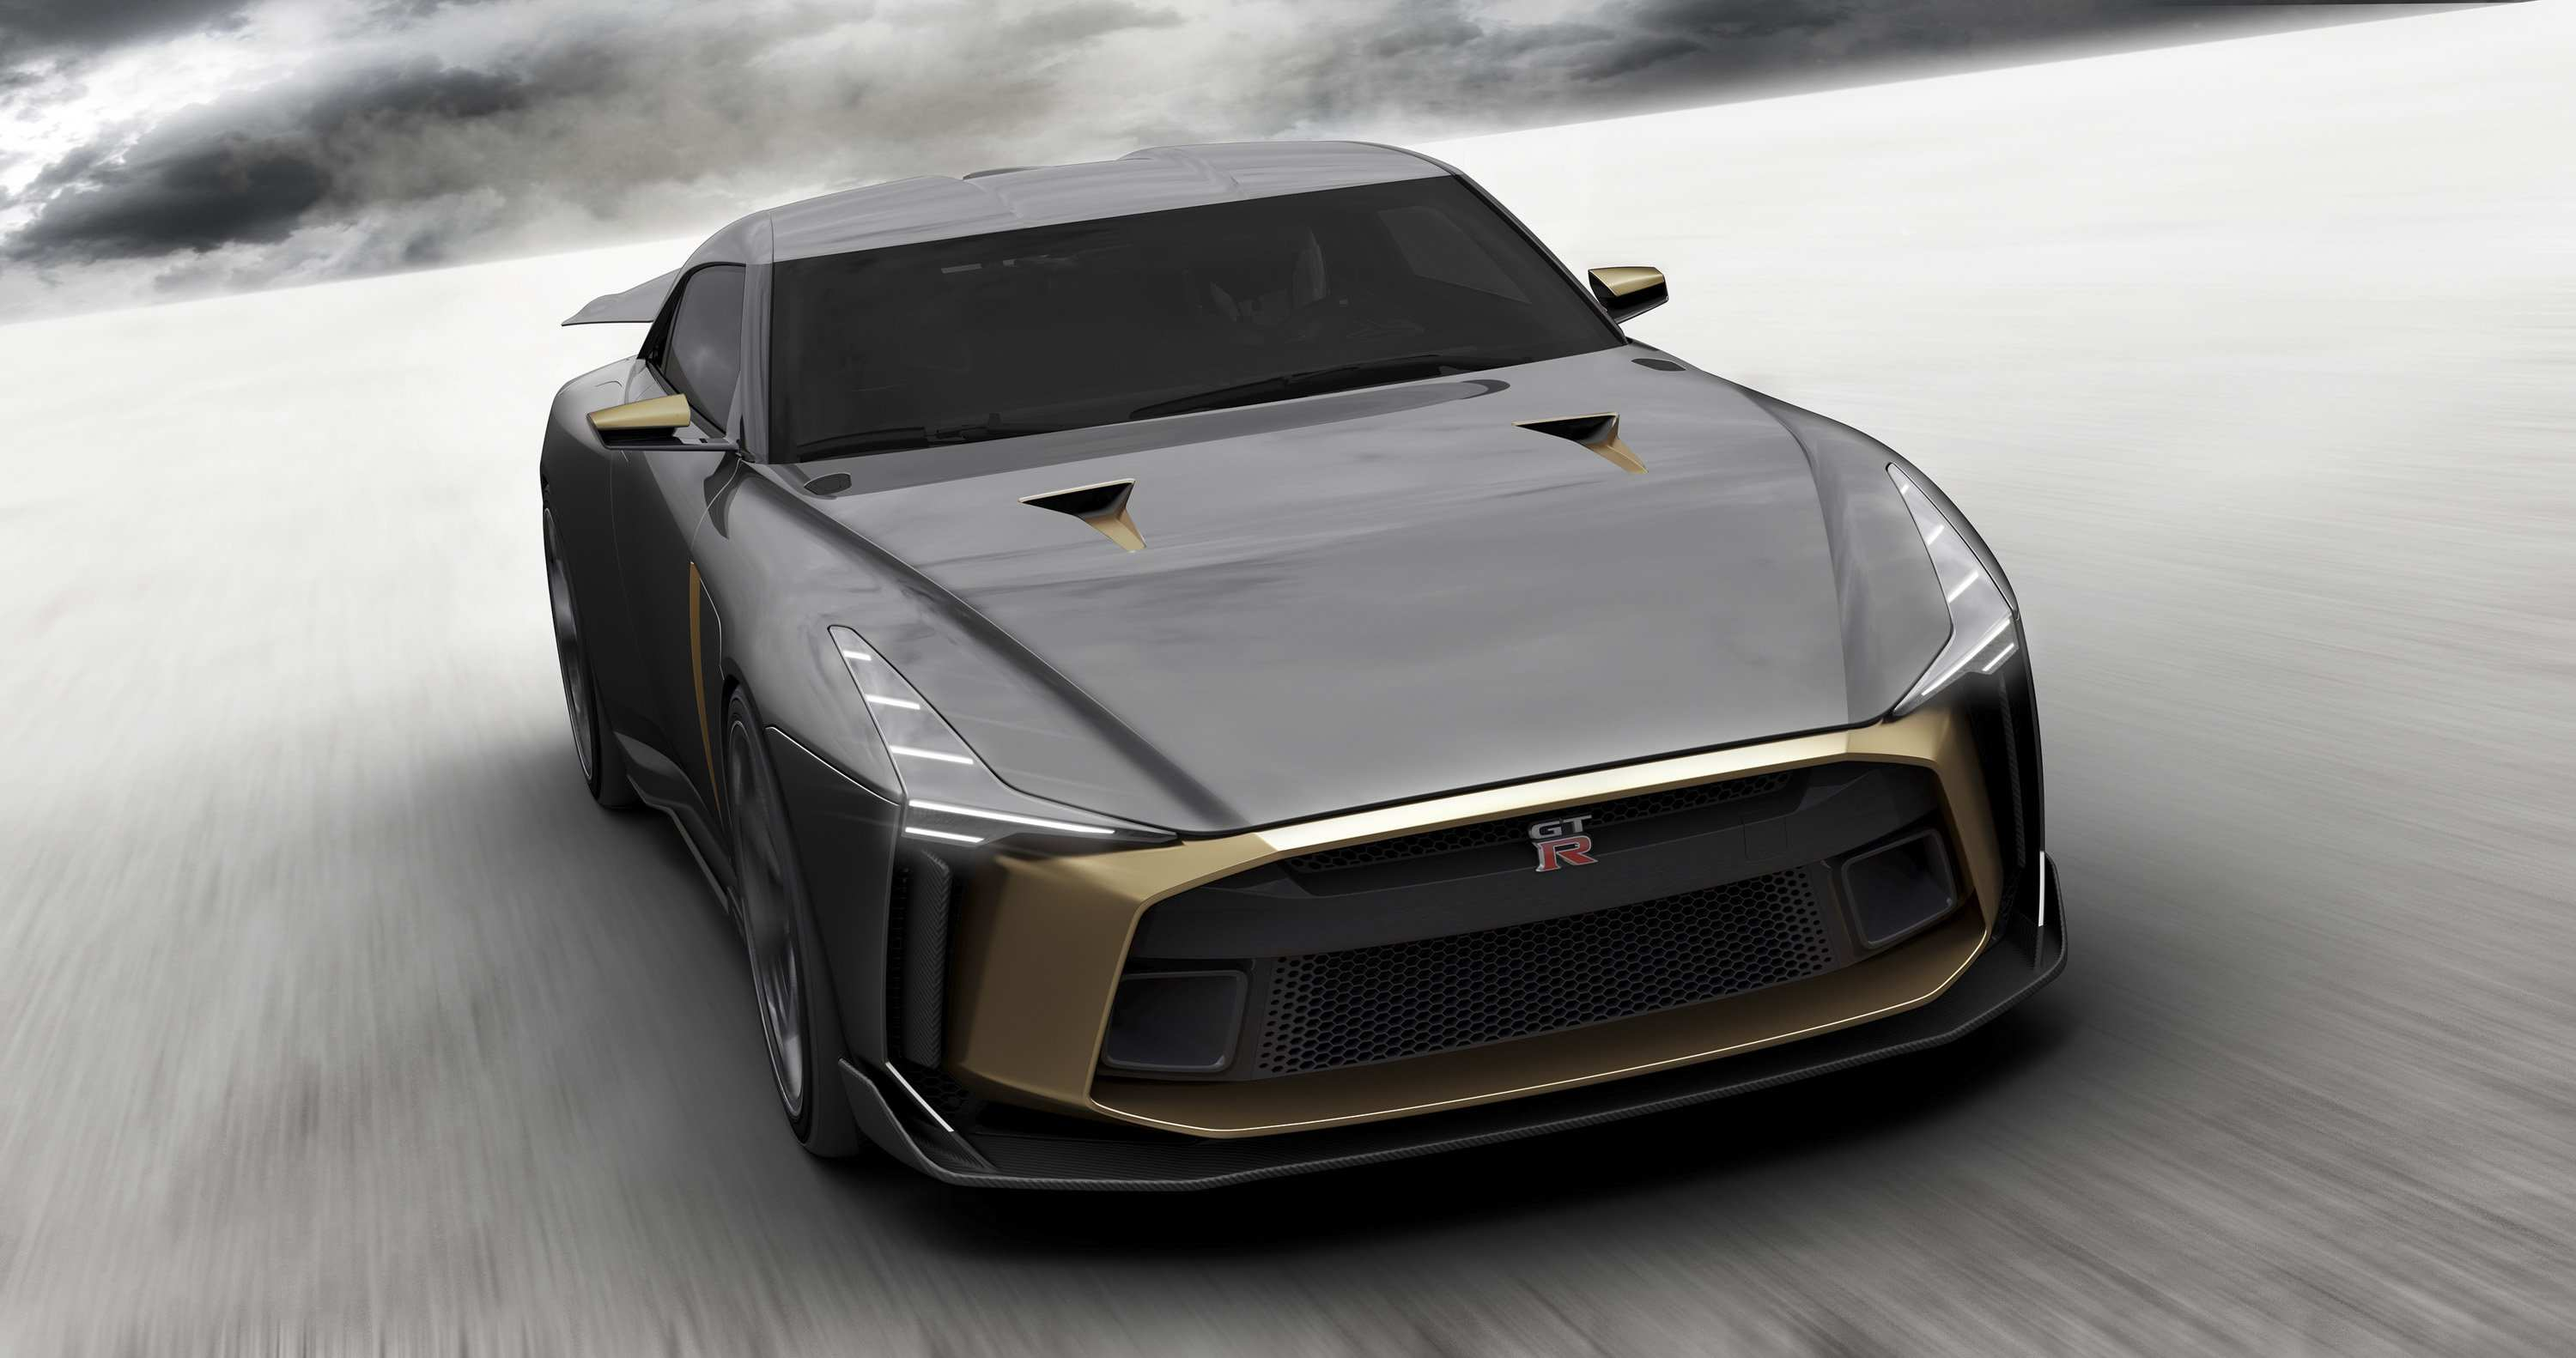 58 Gallery of Nissan Skyline 2020 Overview with Nissan Skyline 2020